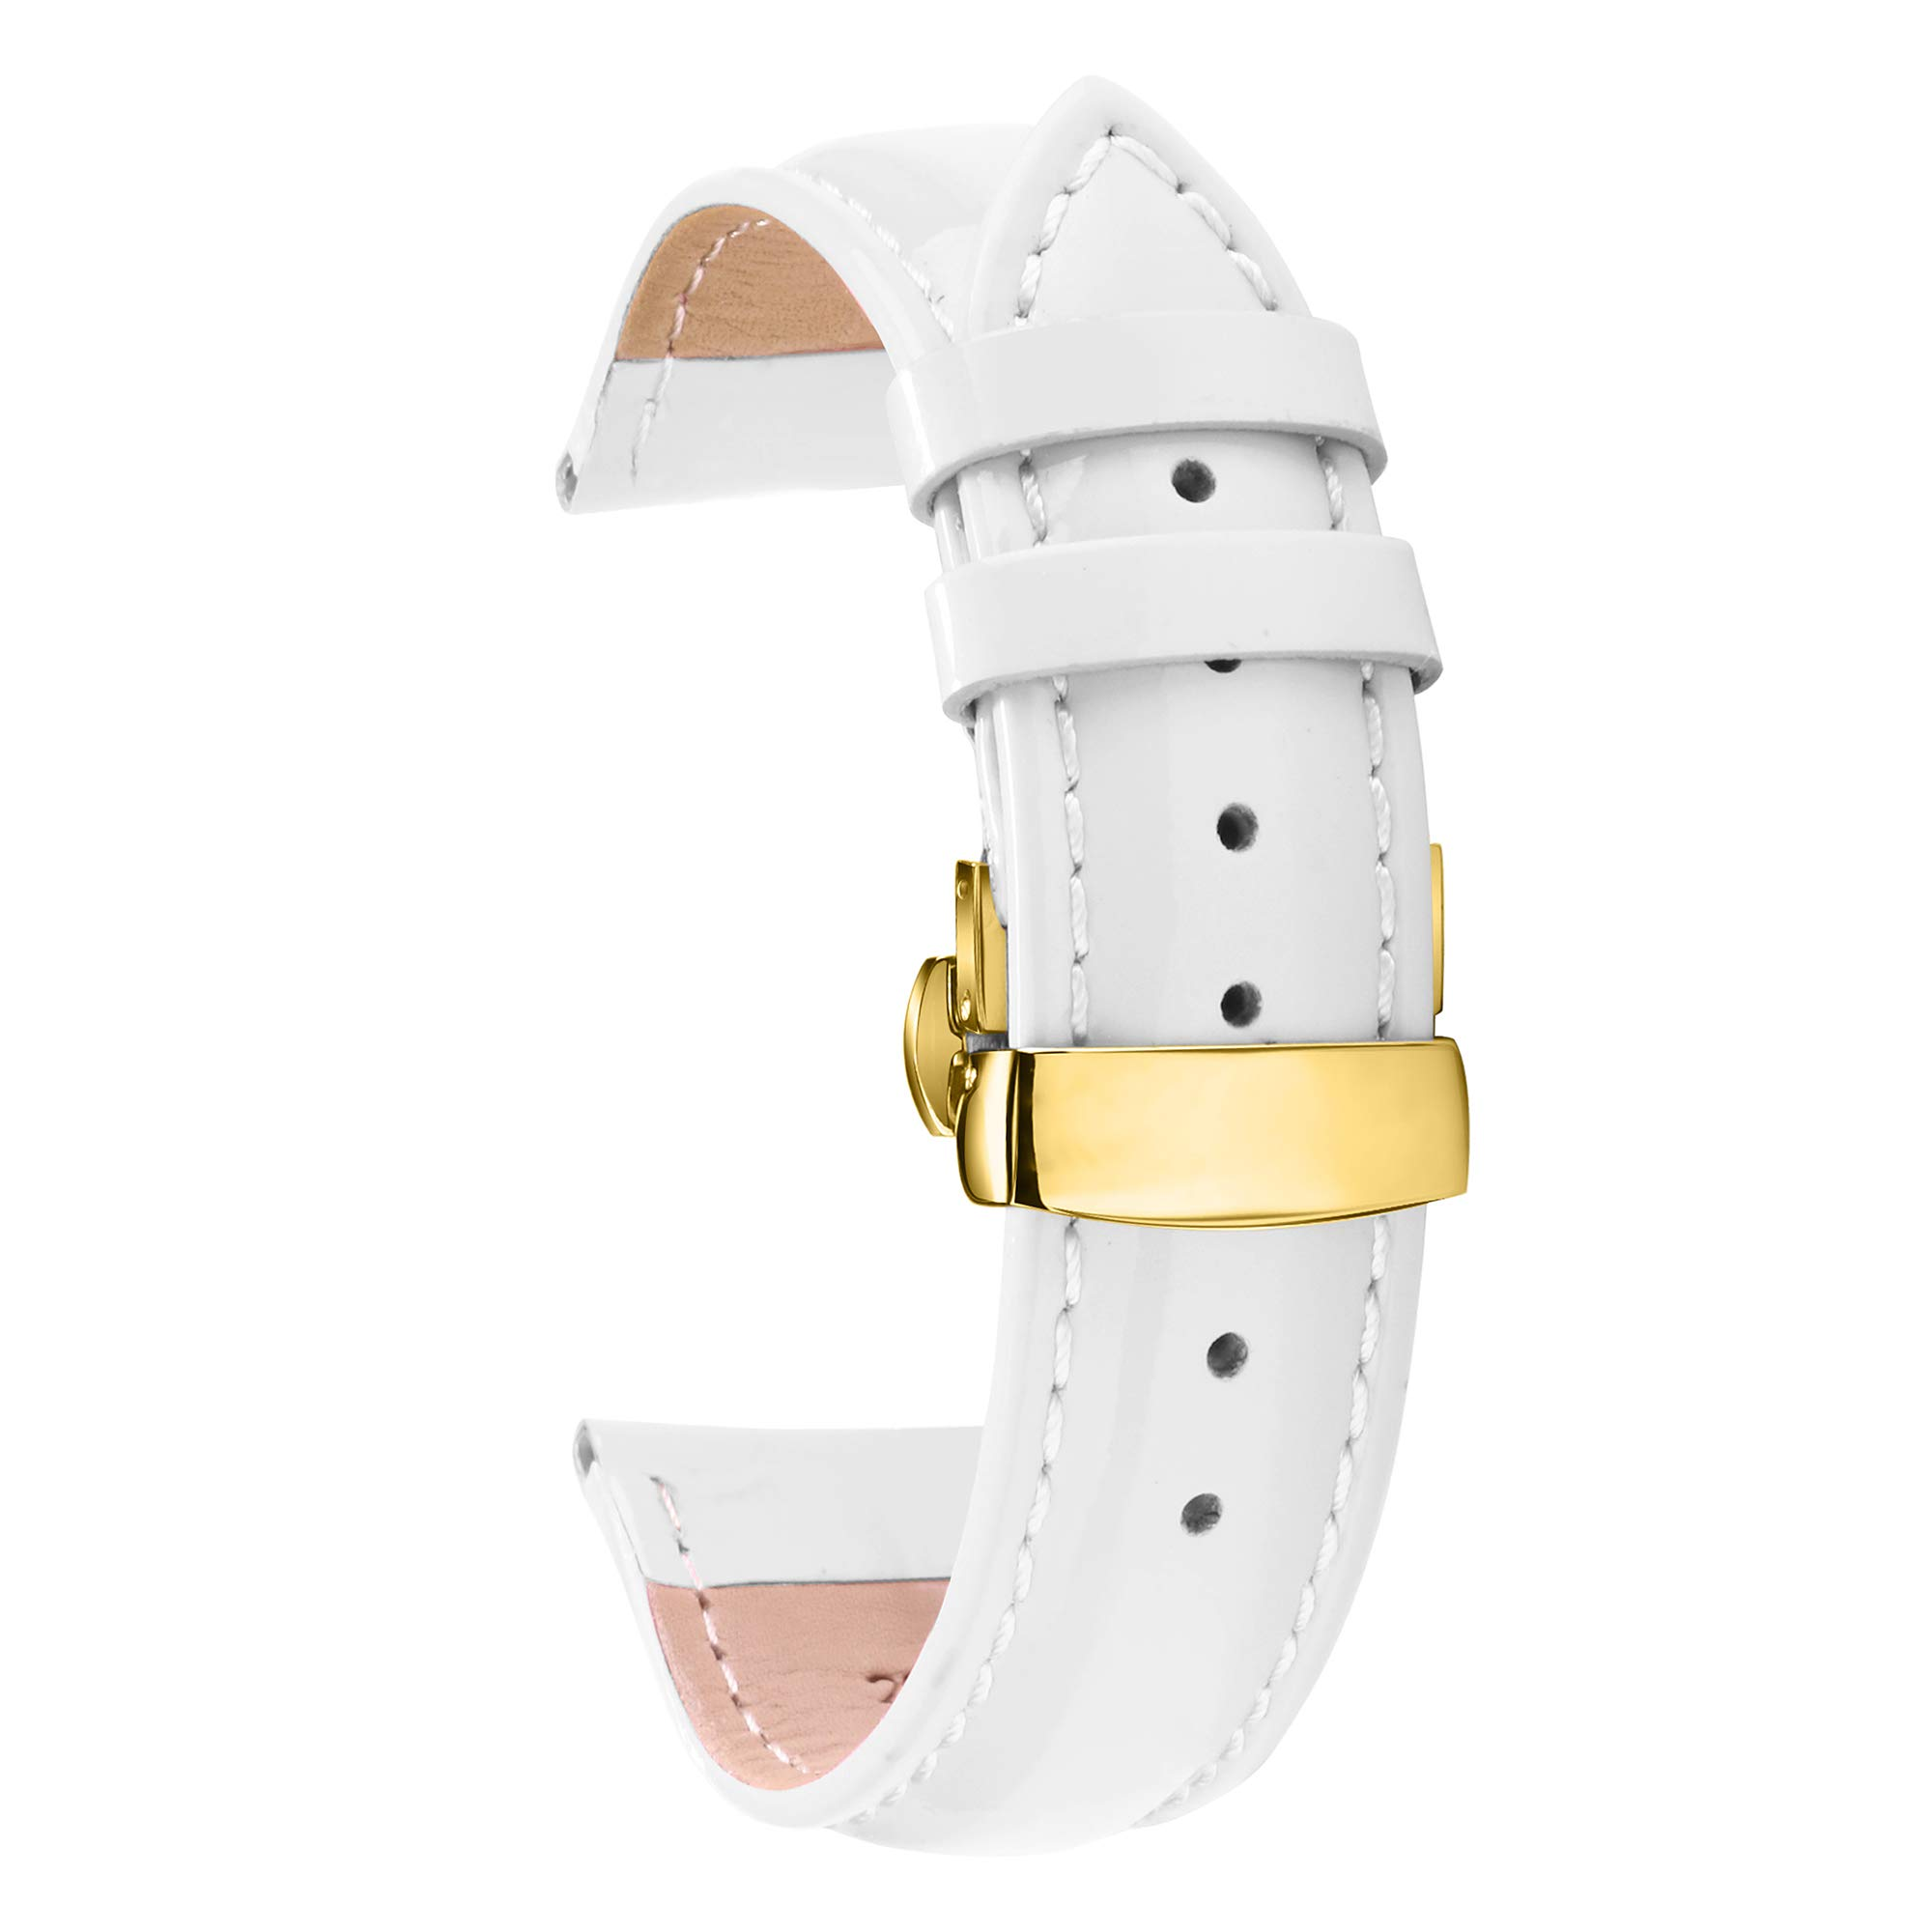 18mm Watch Band Strap Watch Band Leather Replacement Bracelet Belt